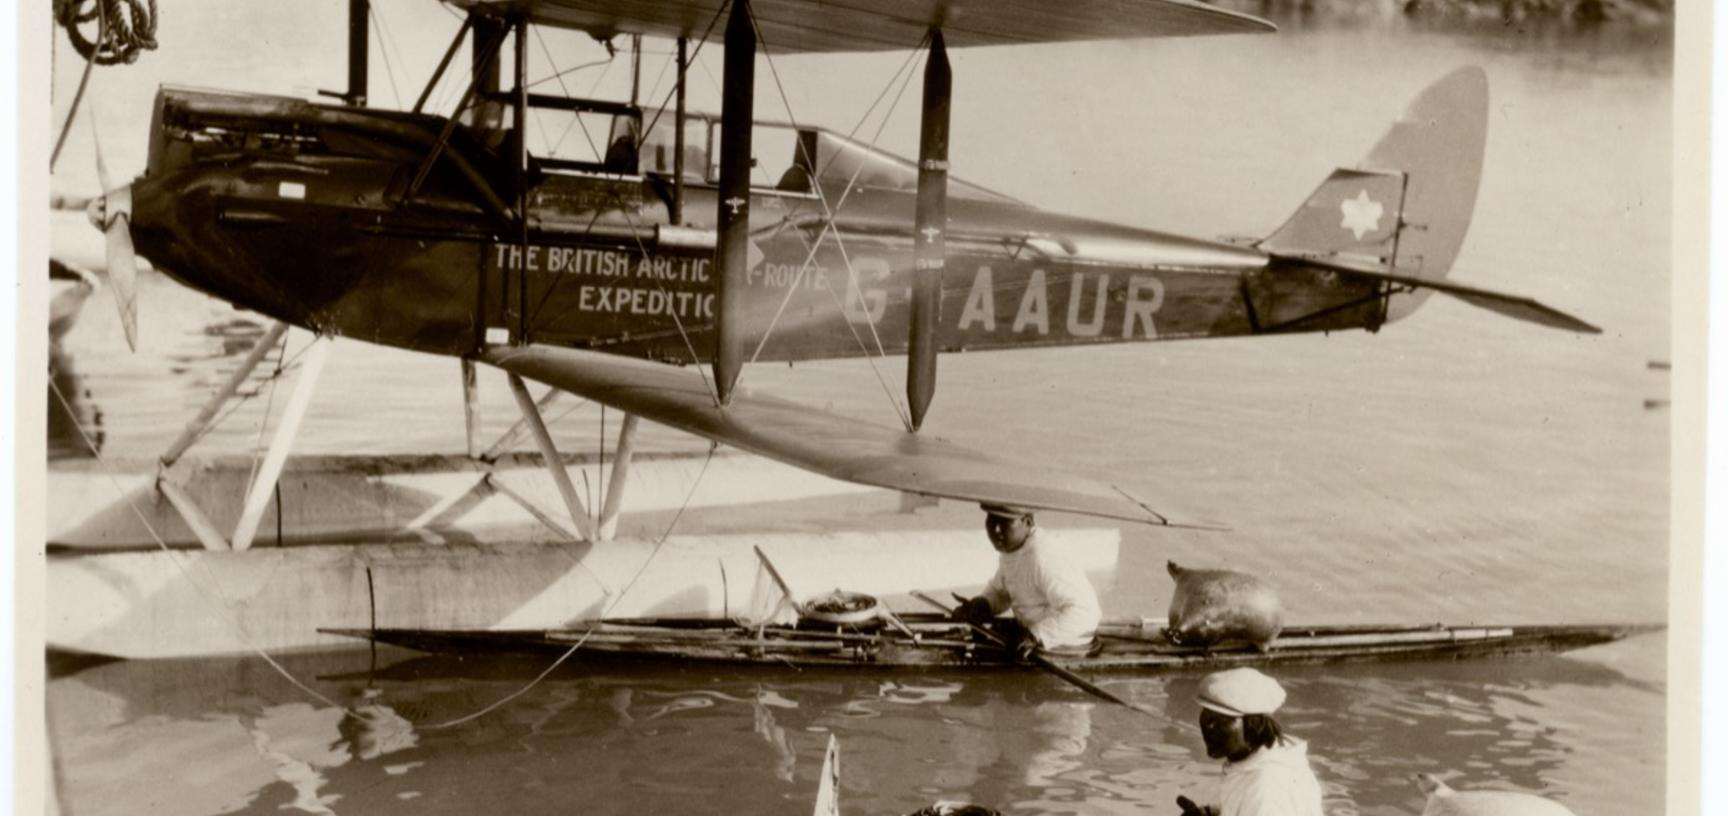 A small De Havilland Moth biplane used in the expedition, shown here with landing gear of water floats. Photograph by Alfred Stephenson. Greenland. 1930–1931.